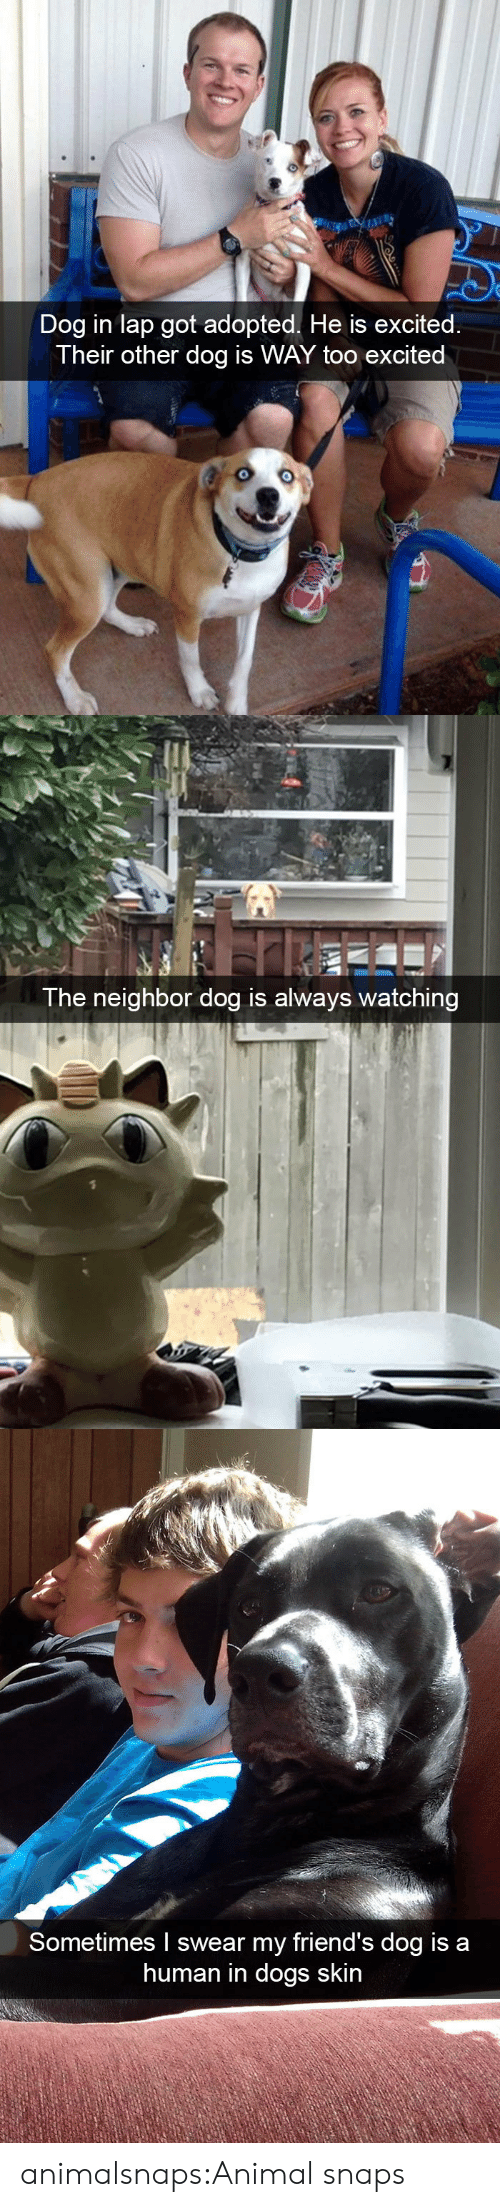 Dogs, Friends, and Target: Dog in lap got adopted. He is excited.  Their other dog is WAY too excited   The neighbor dog is always watching   Sometimes I swear my friend's dog is a  human in dogs skin animalsnaps:Animal snaps